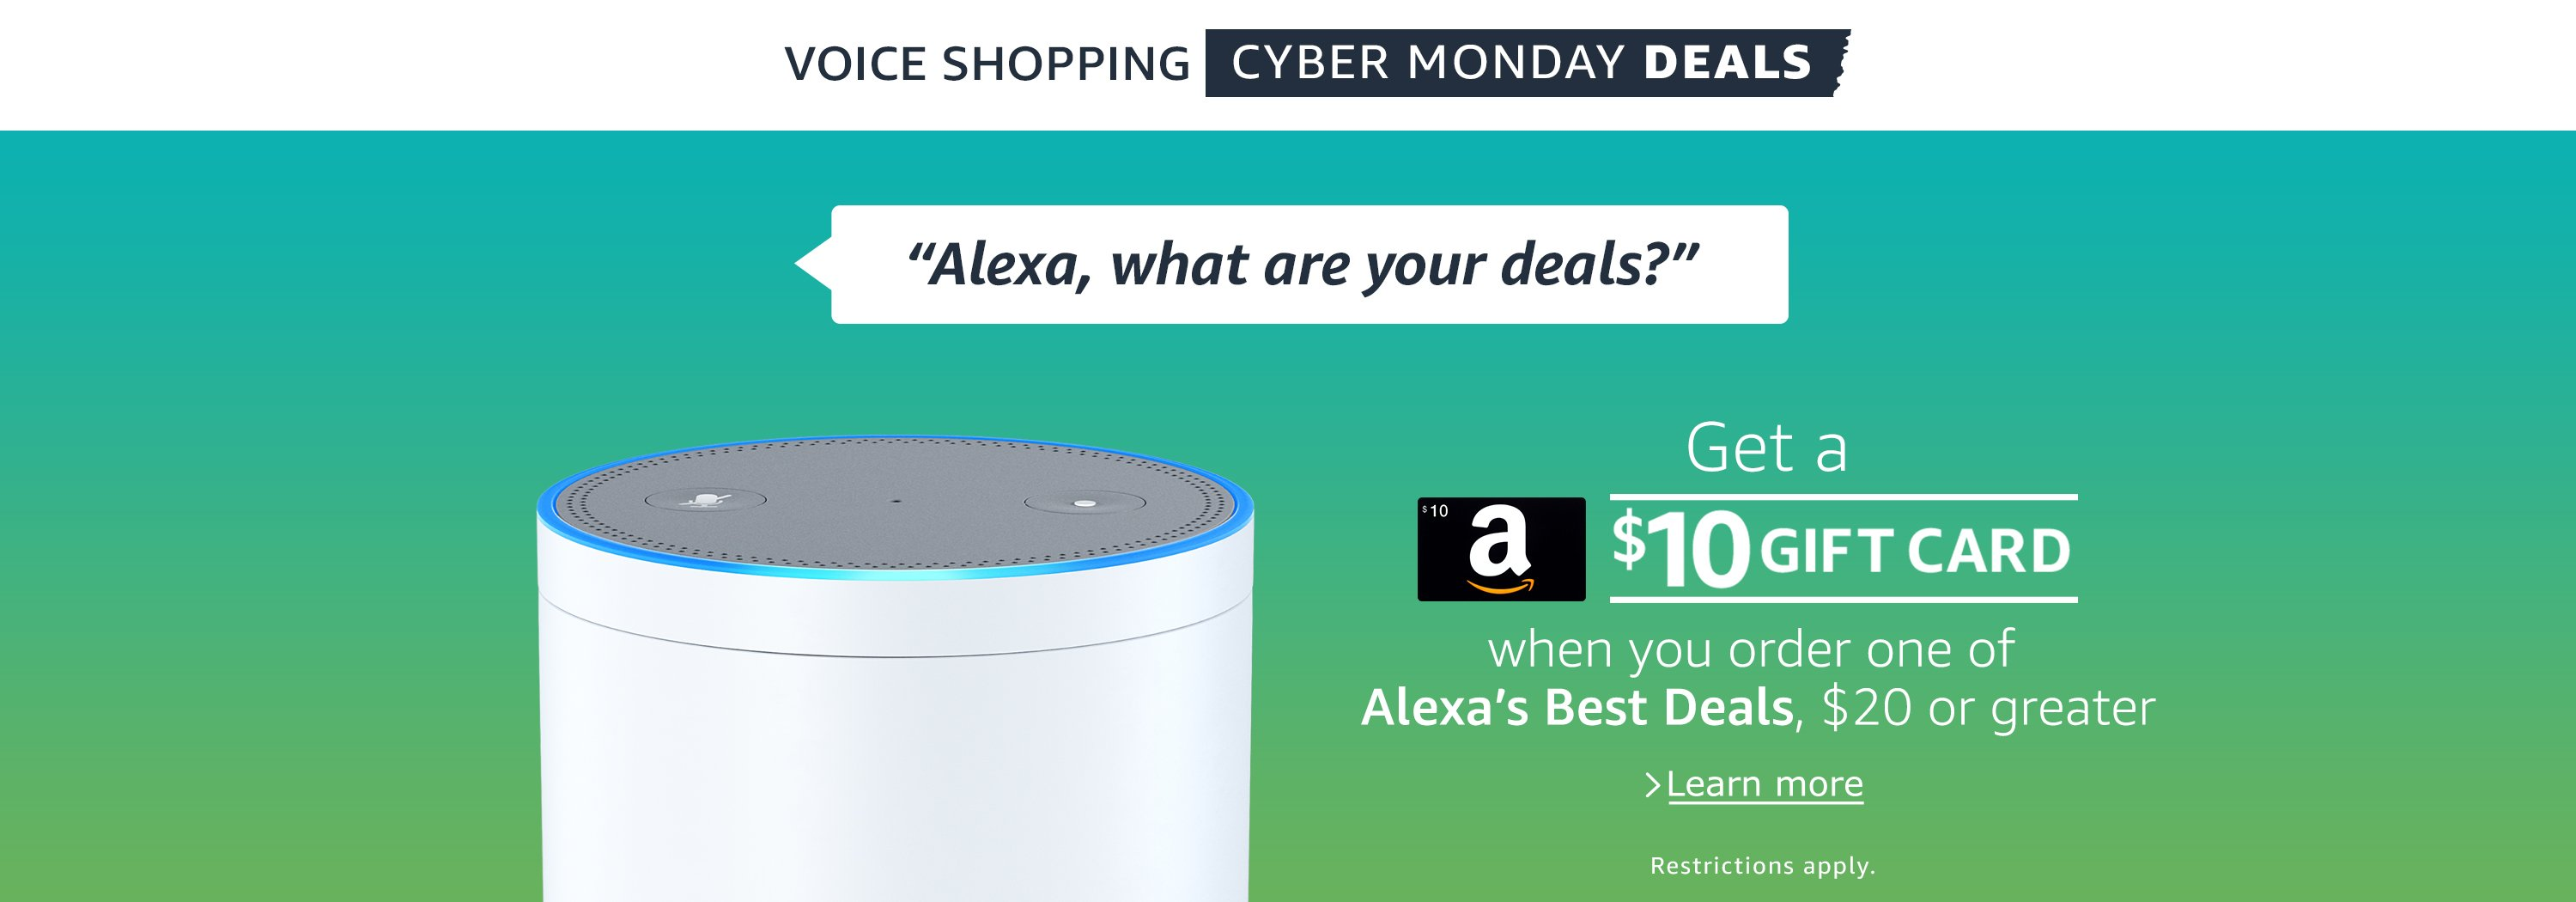 Alexa, what are your deals?